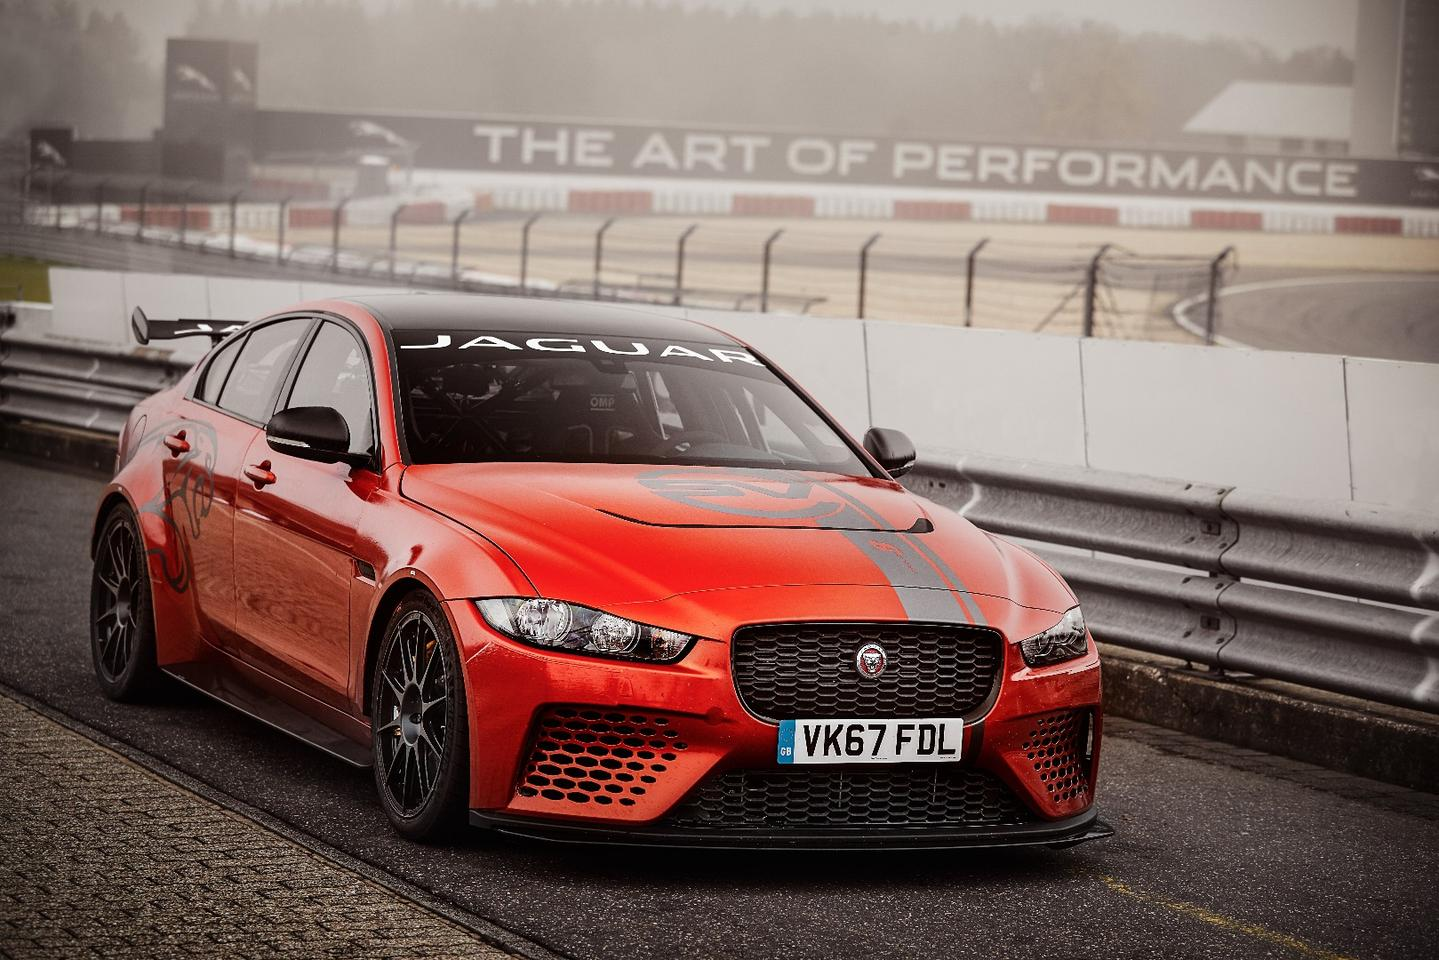 Revealed by Jaguar earlier in the year, the XE SV Project 8 is driven by the most powerful iteration of the company's 5.0-liter supercharged V8 we've seen